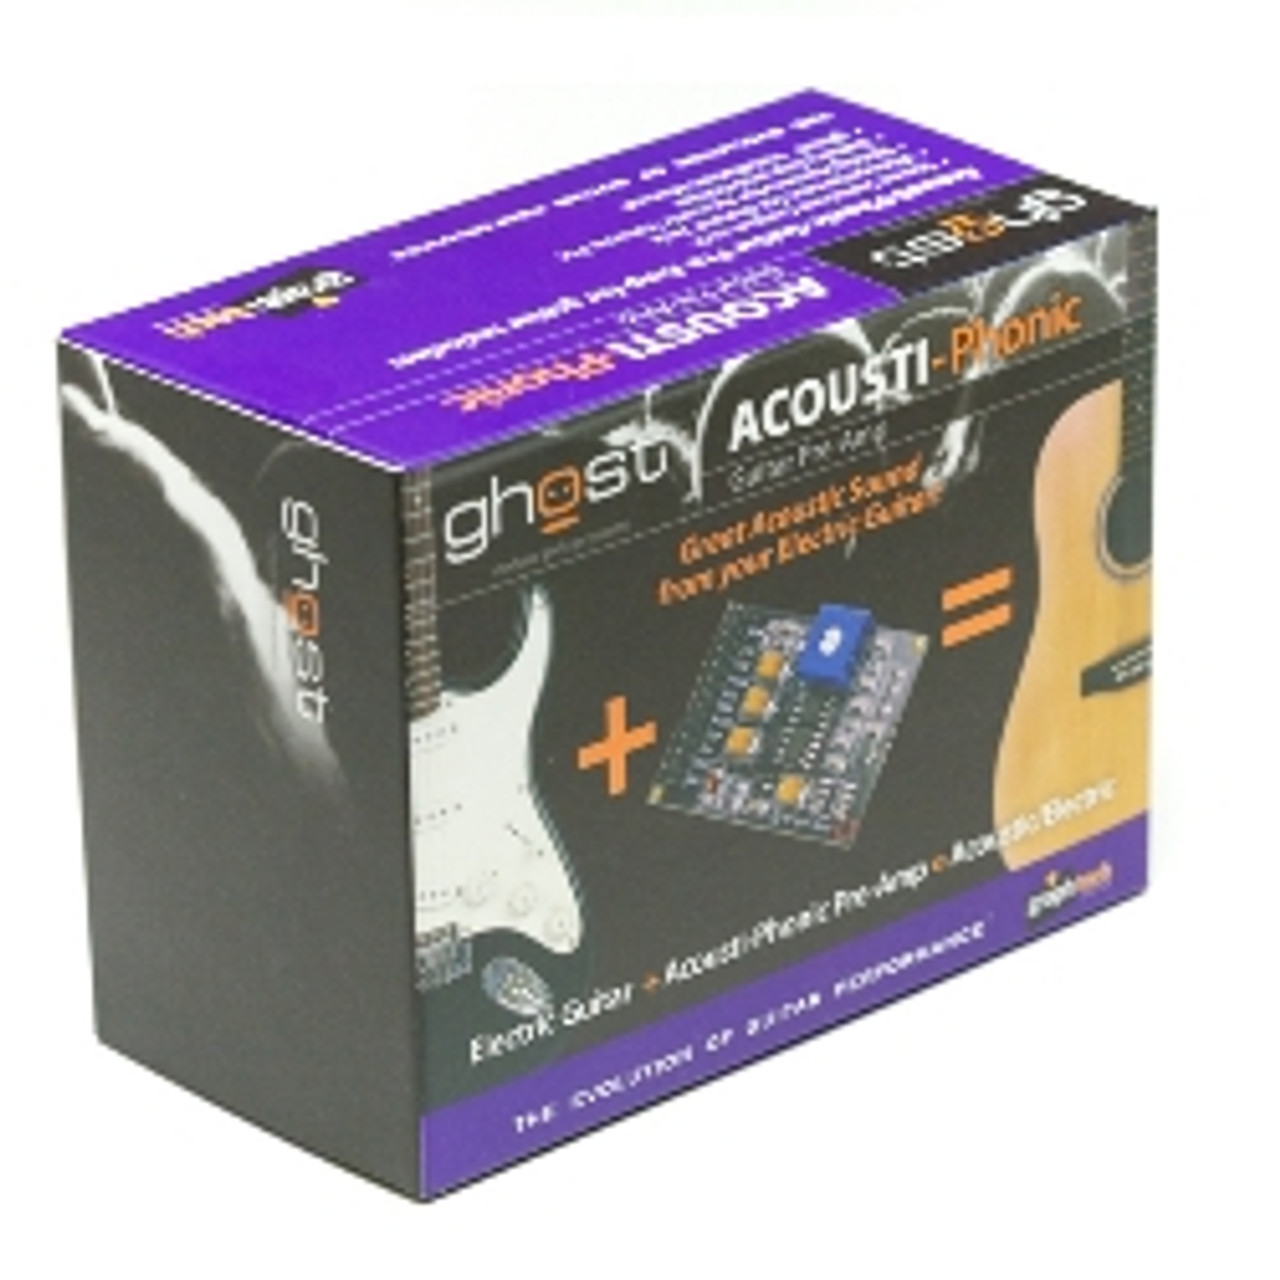 Graph Tech Ghost Acousti-Phonic Guitar Preamp Packaged